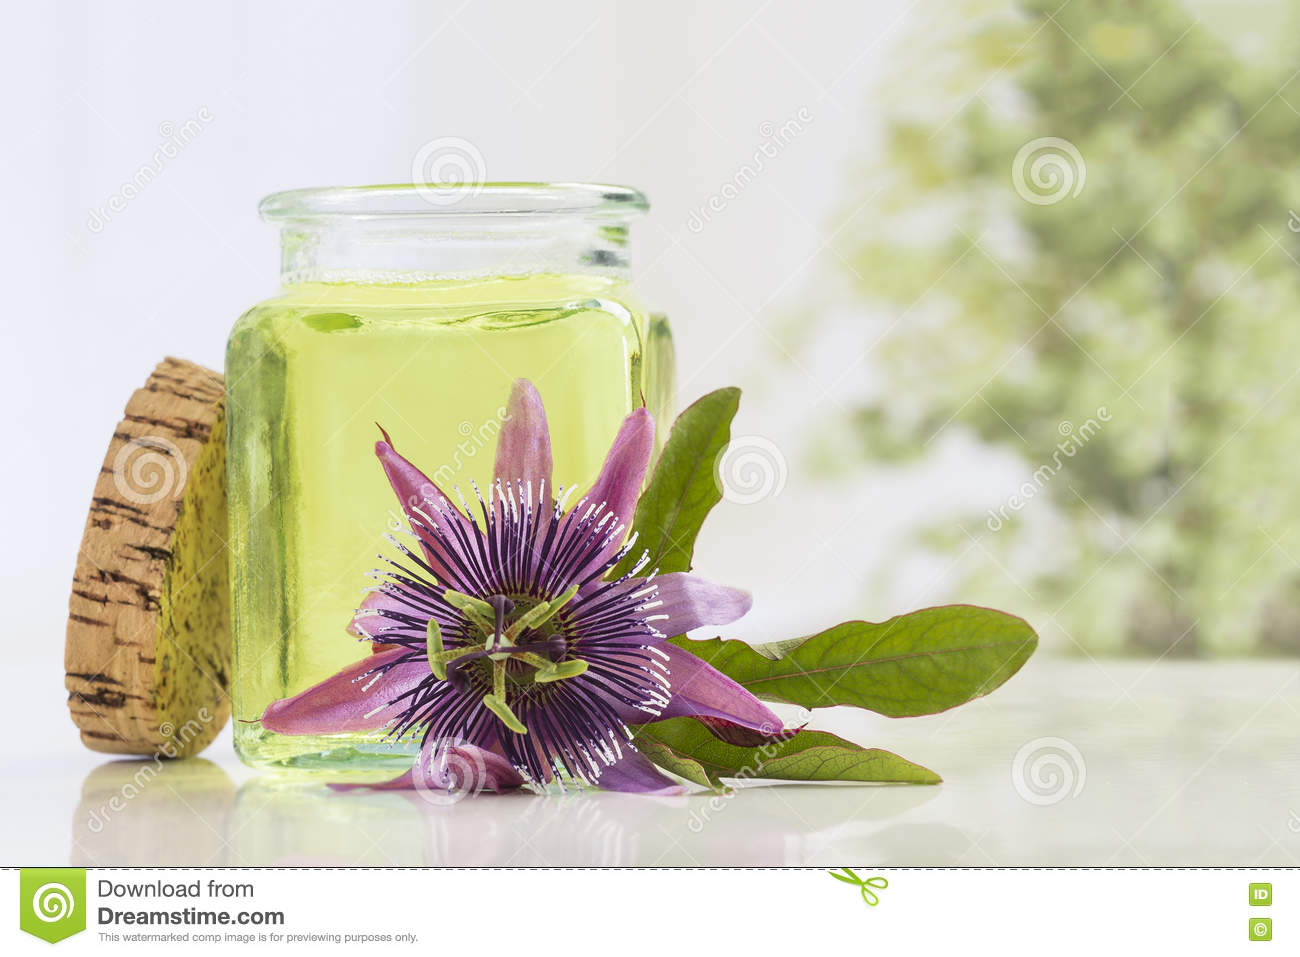 Passionflower oil